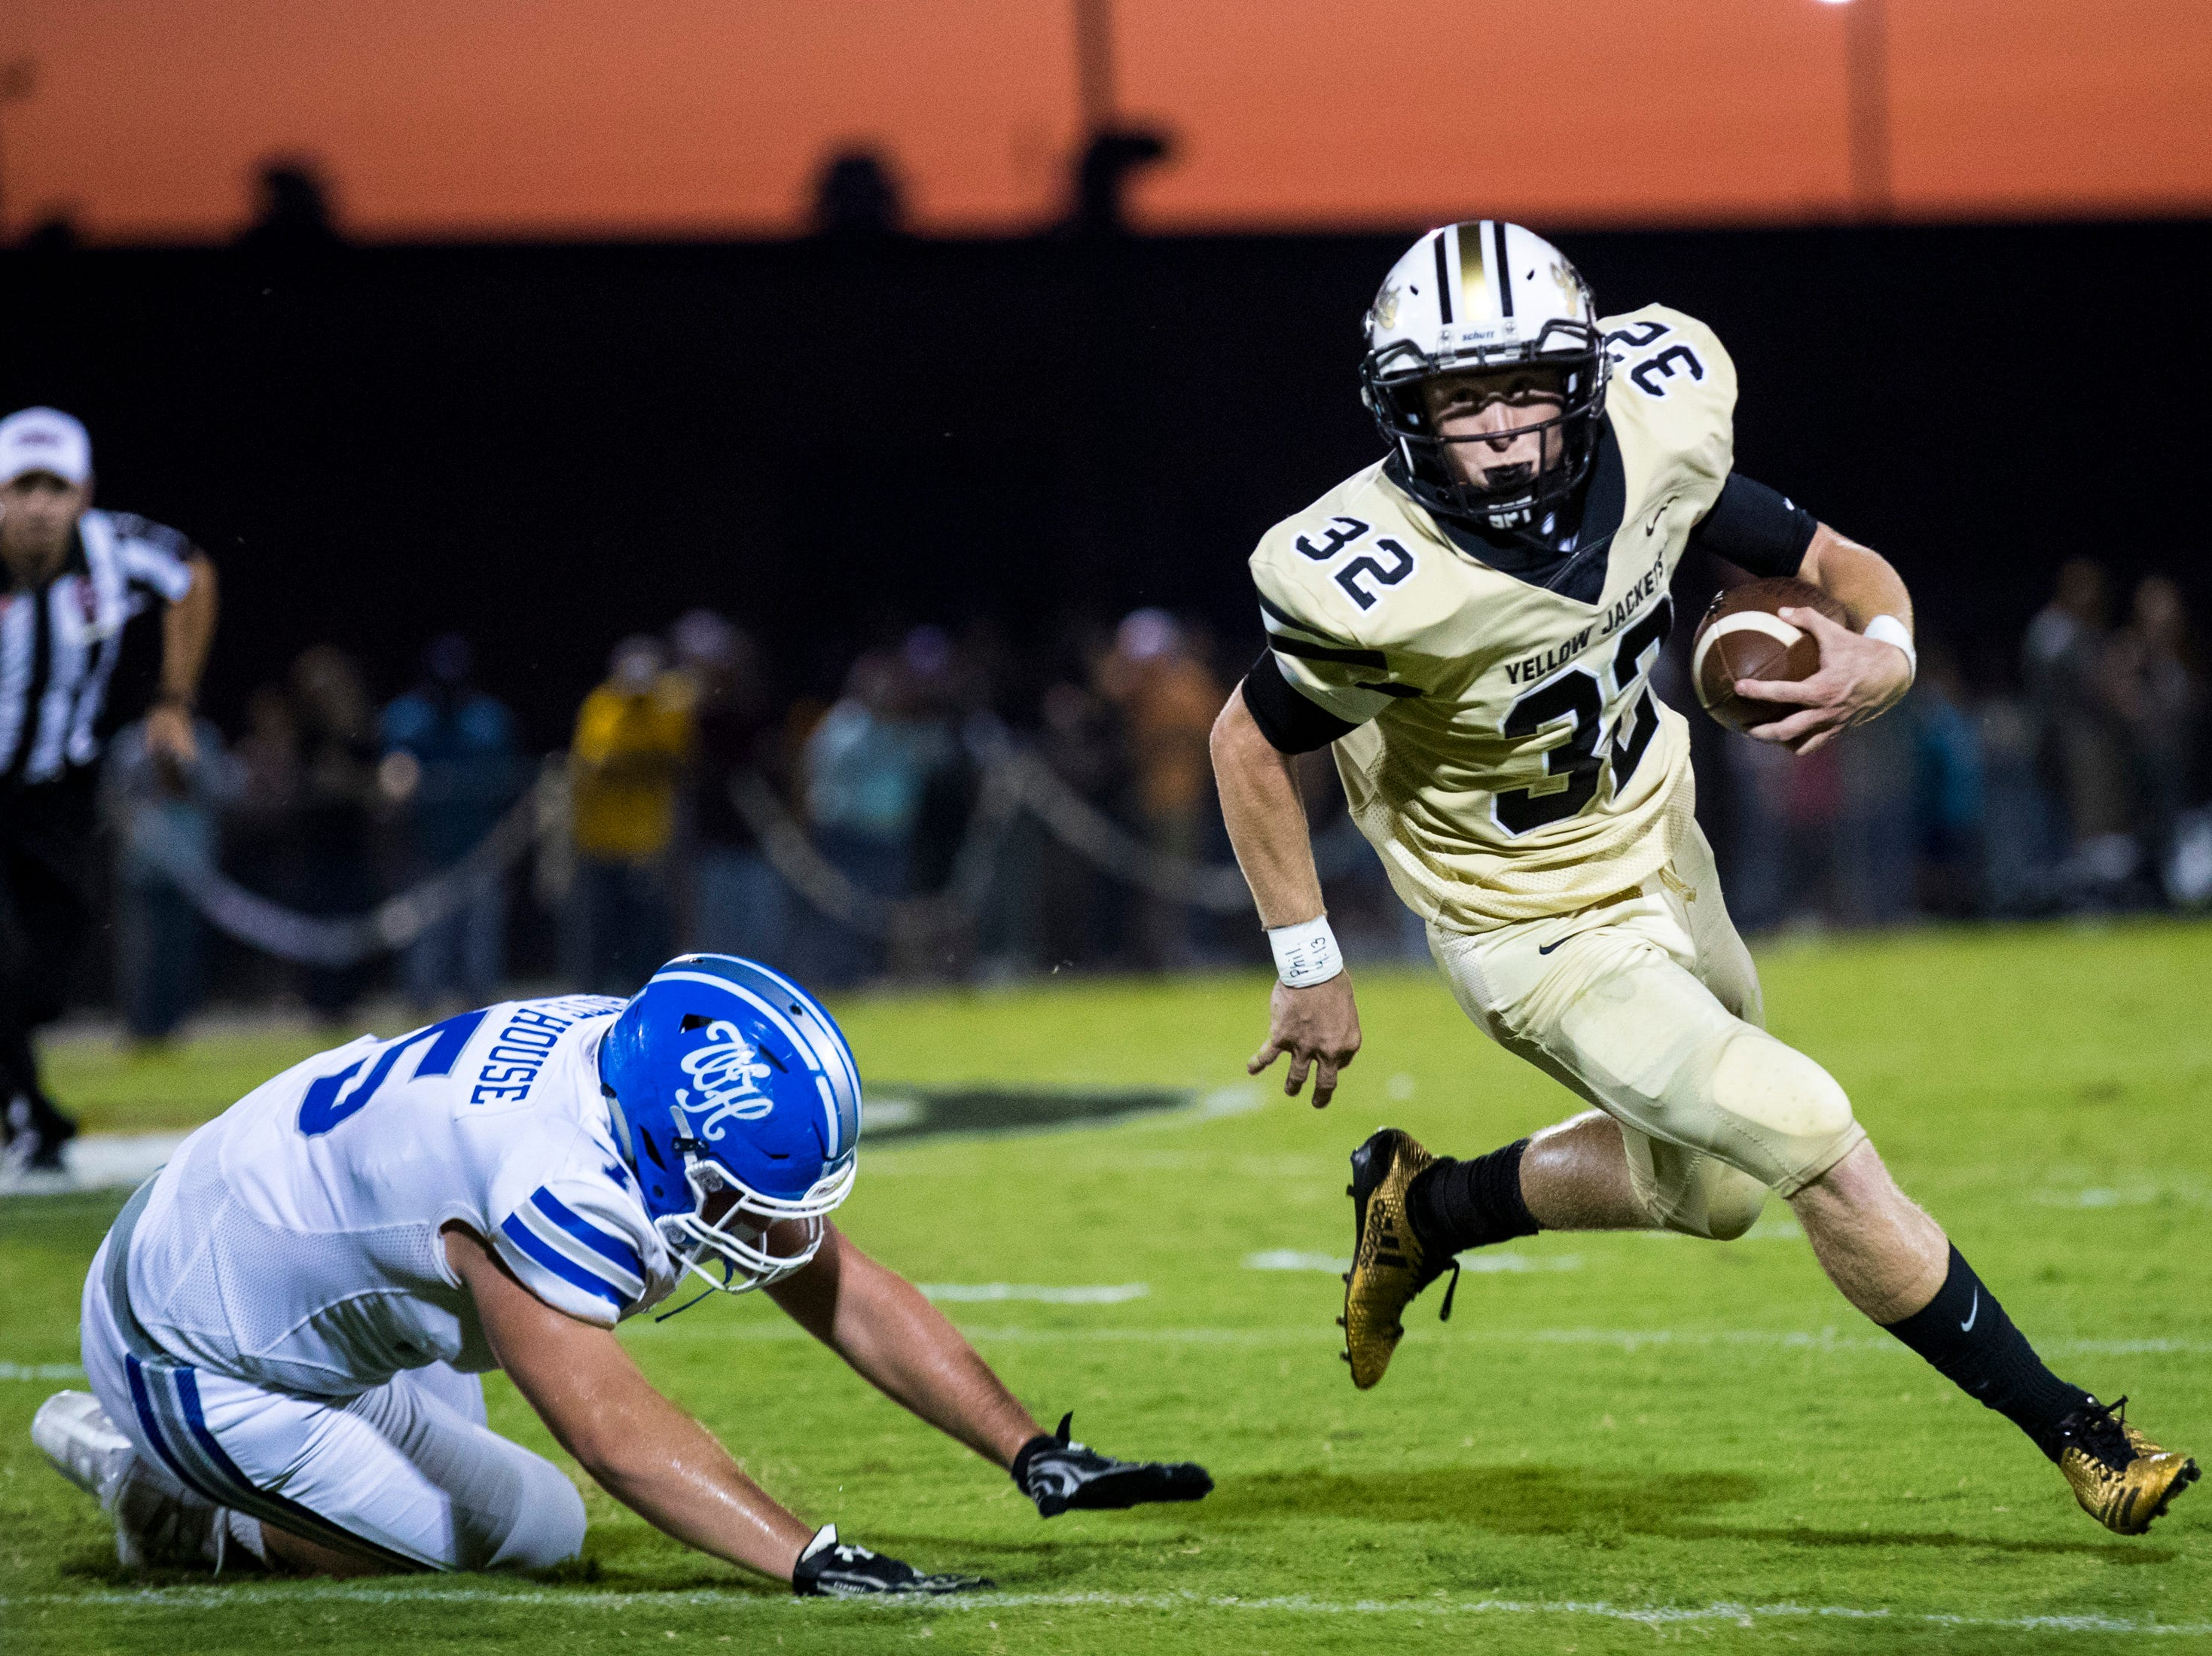 Springfield's Bryan Hayes (32) dodges a tackle during Springfield's game against White House at Springfield High School in Springfield on Friday, Sept. 14, 2018.